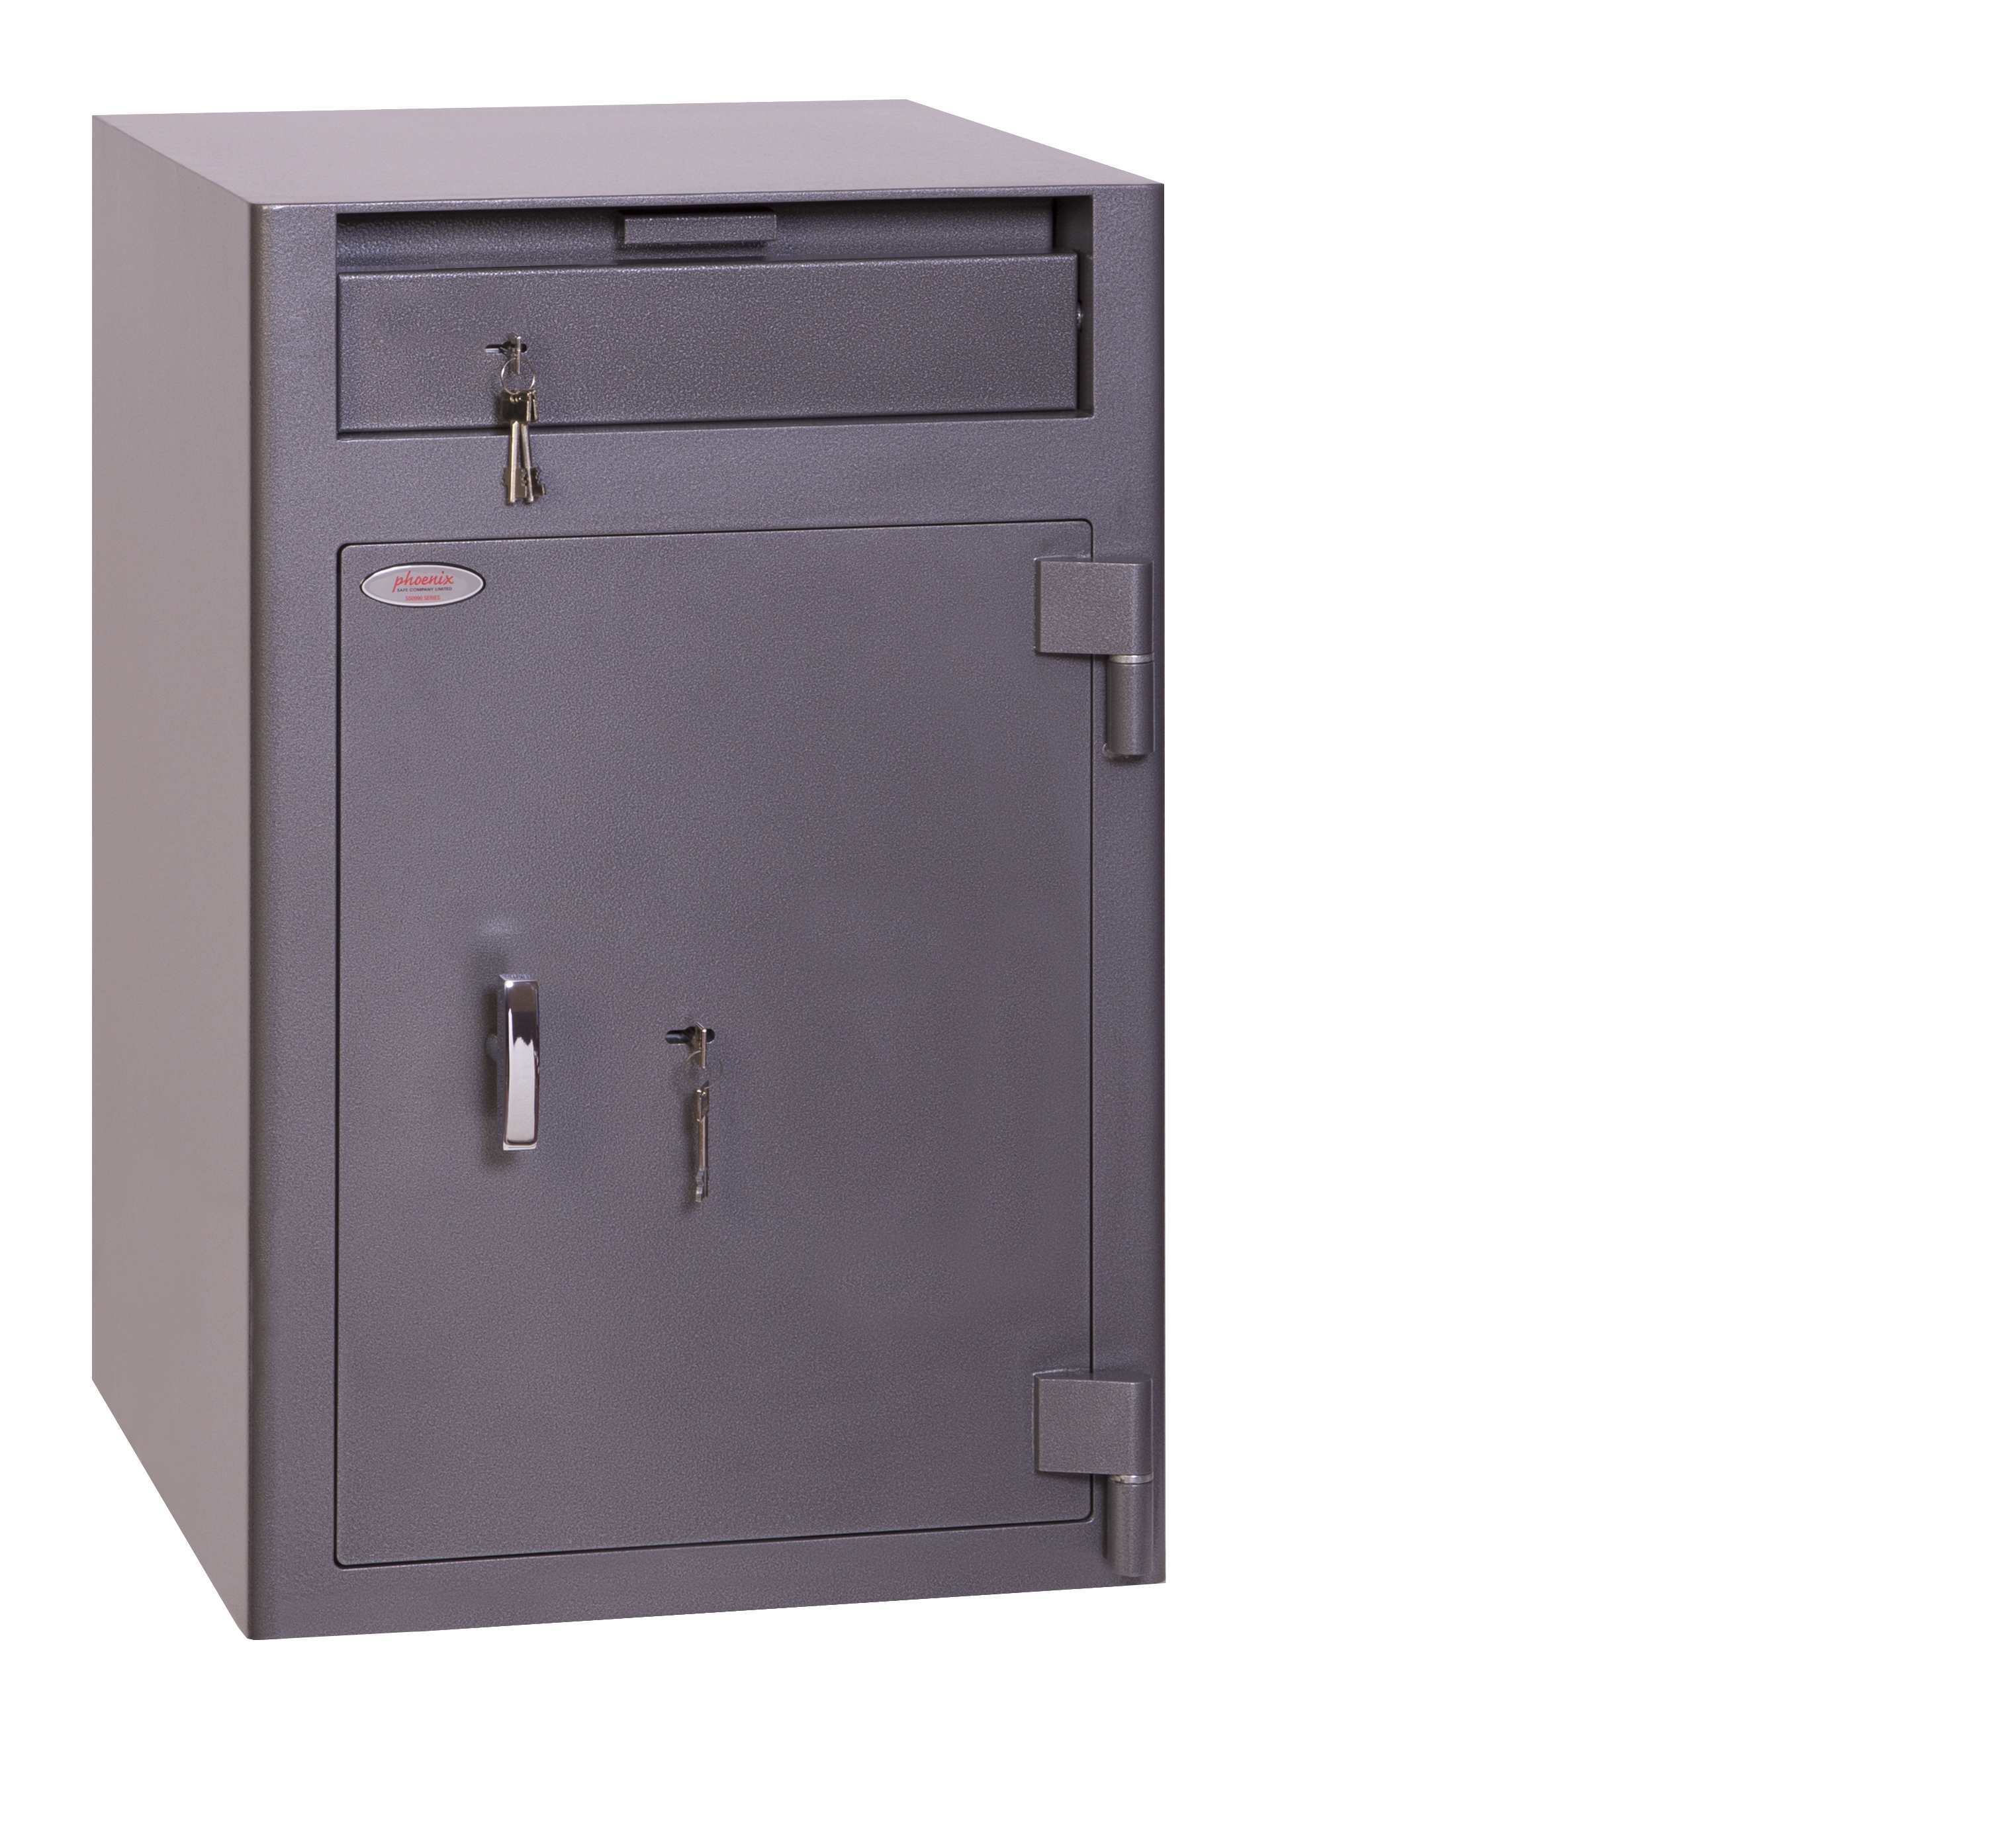 Key Store Phoenix Cash Deposit Size 3 Security Safe with Key Lock